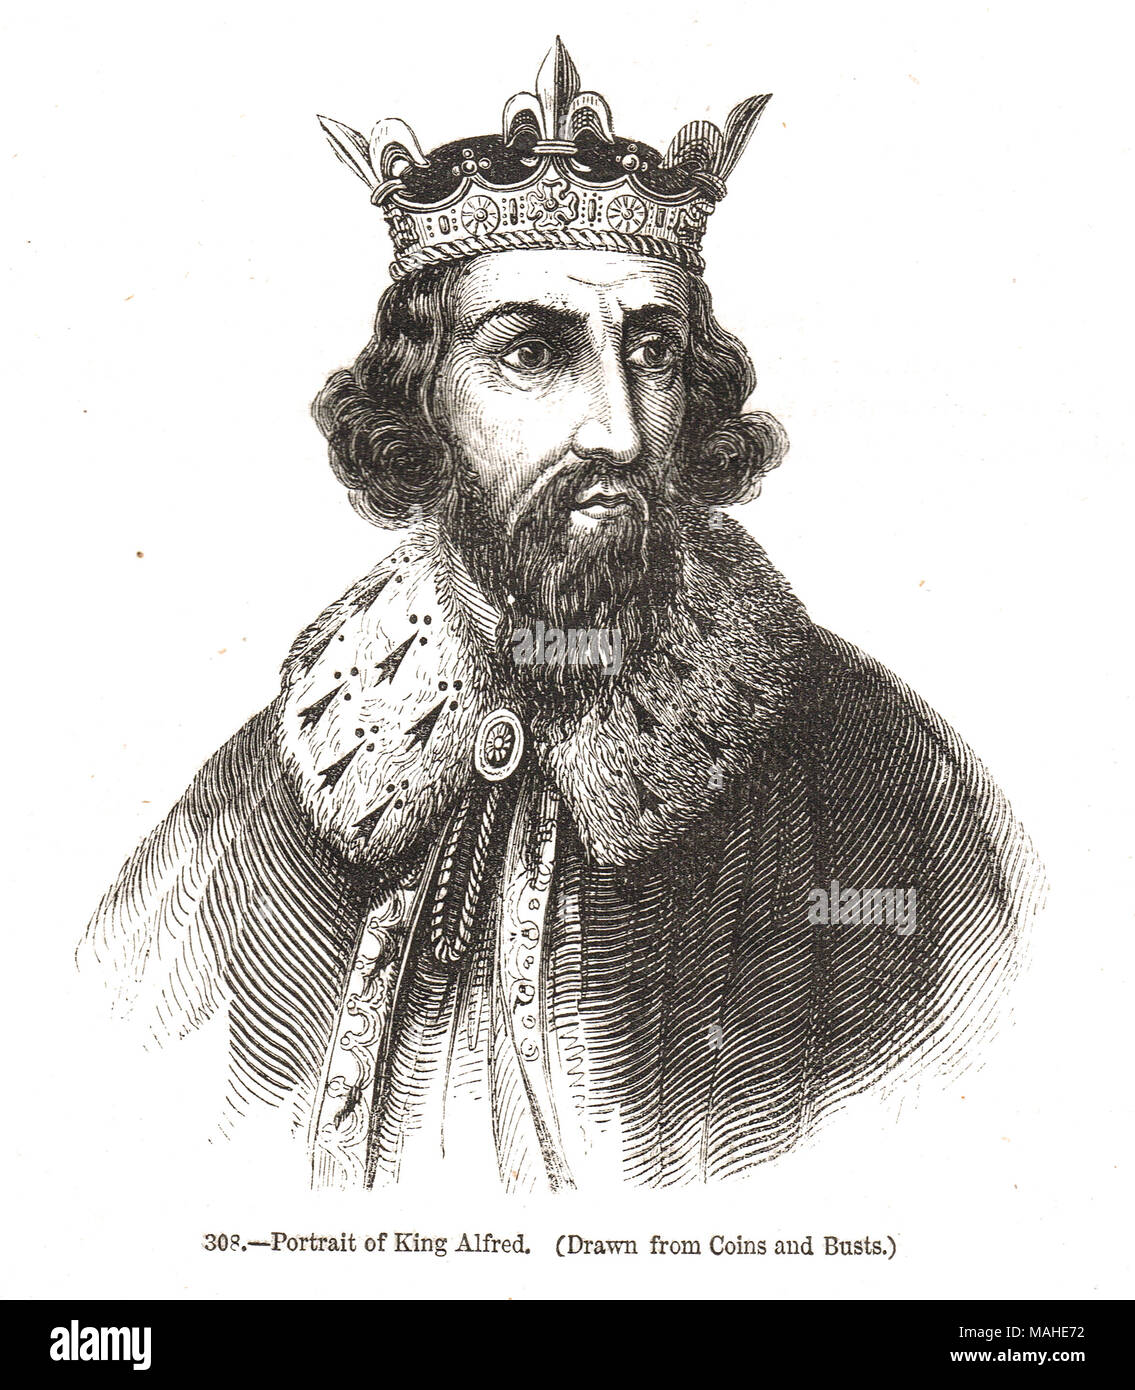 King Alfred the Great 9th century King of Wessex - Stock Image